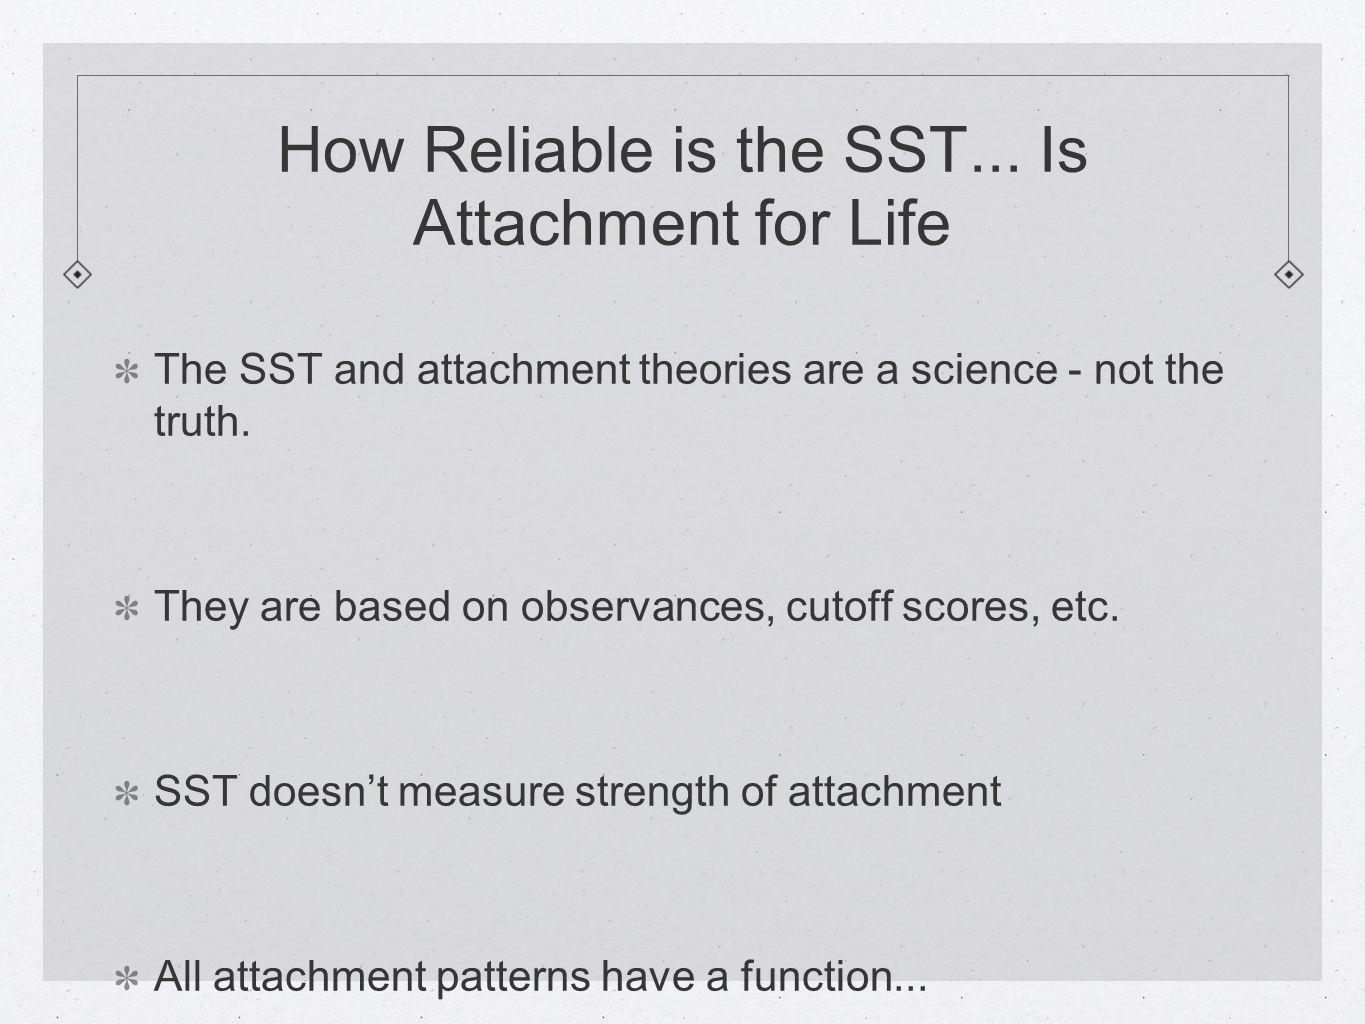 How Reliable is the SST... Is Attachment for Life